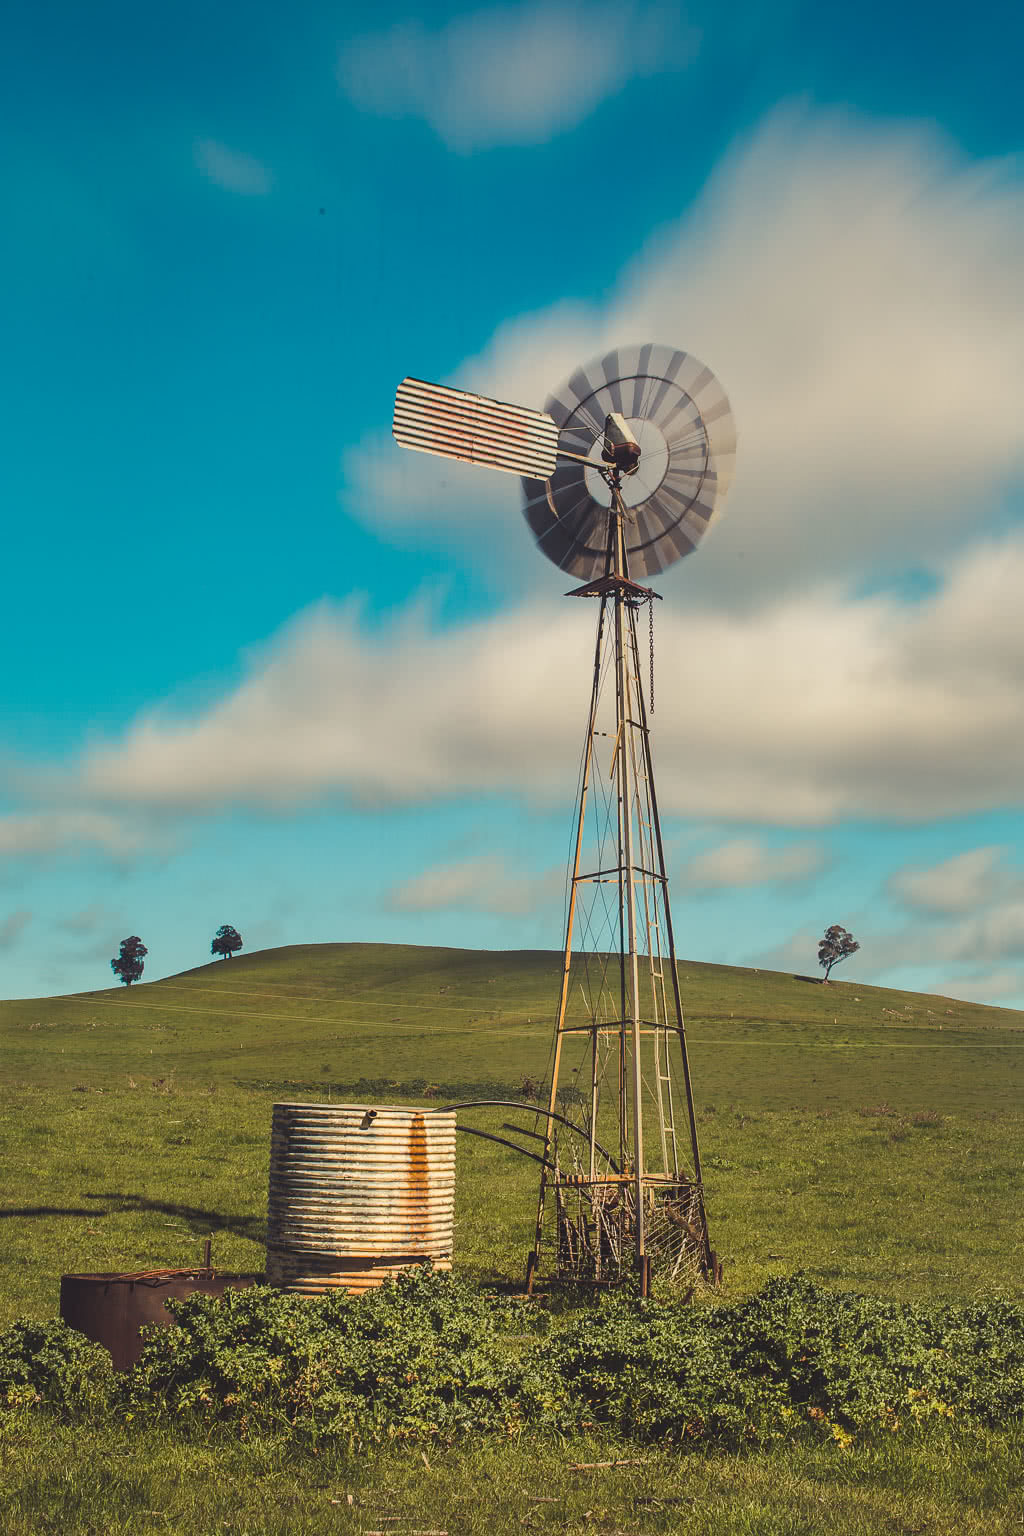 Cootamundra's Canola Fields & The Sugar Pine Forest (NSW), Alfonso Calero, Riverina, NSW, windmill